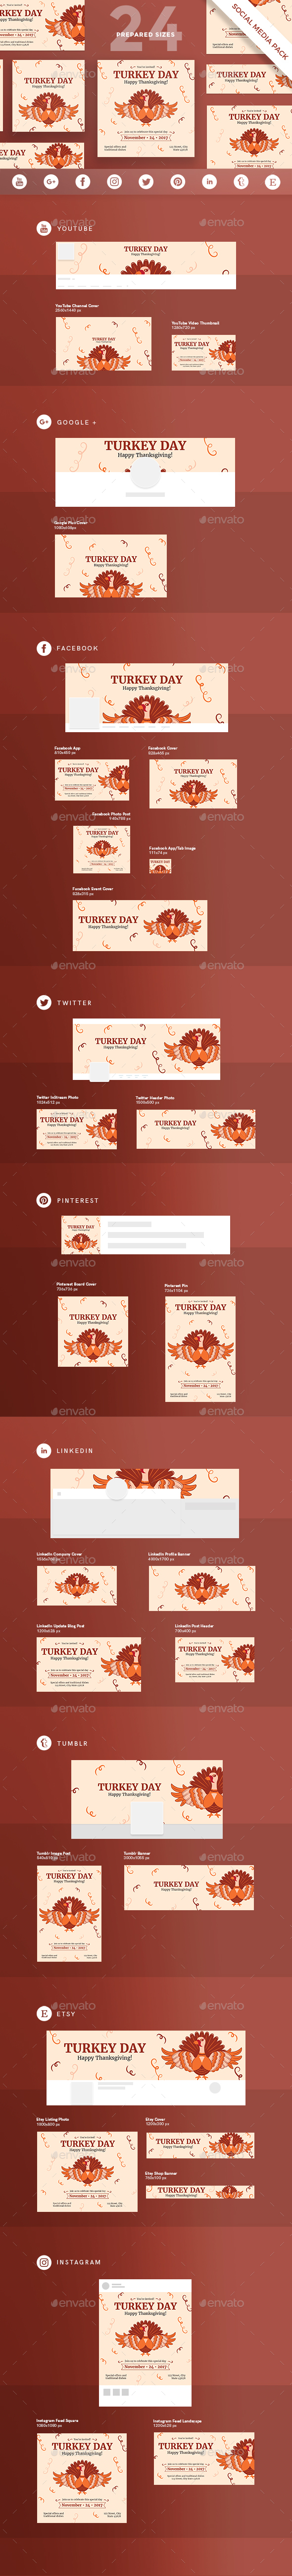 GraphicRiver Turkey Day Social Media Pack 20792428